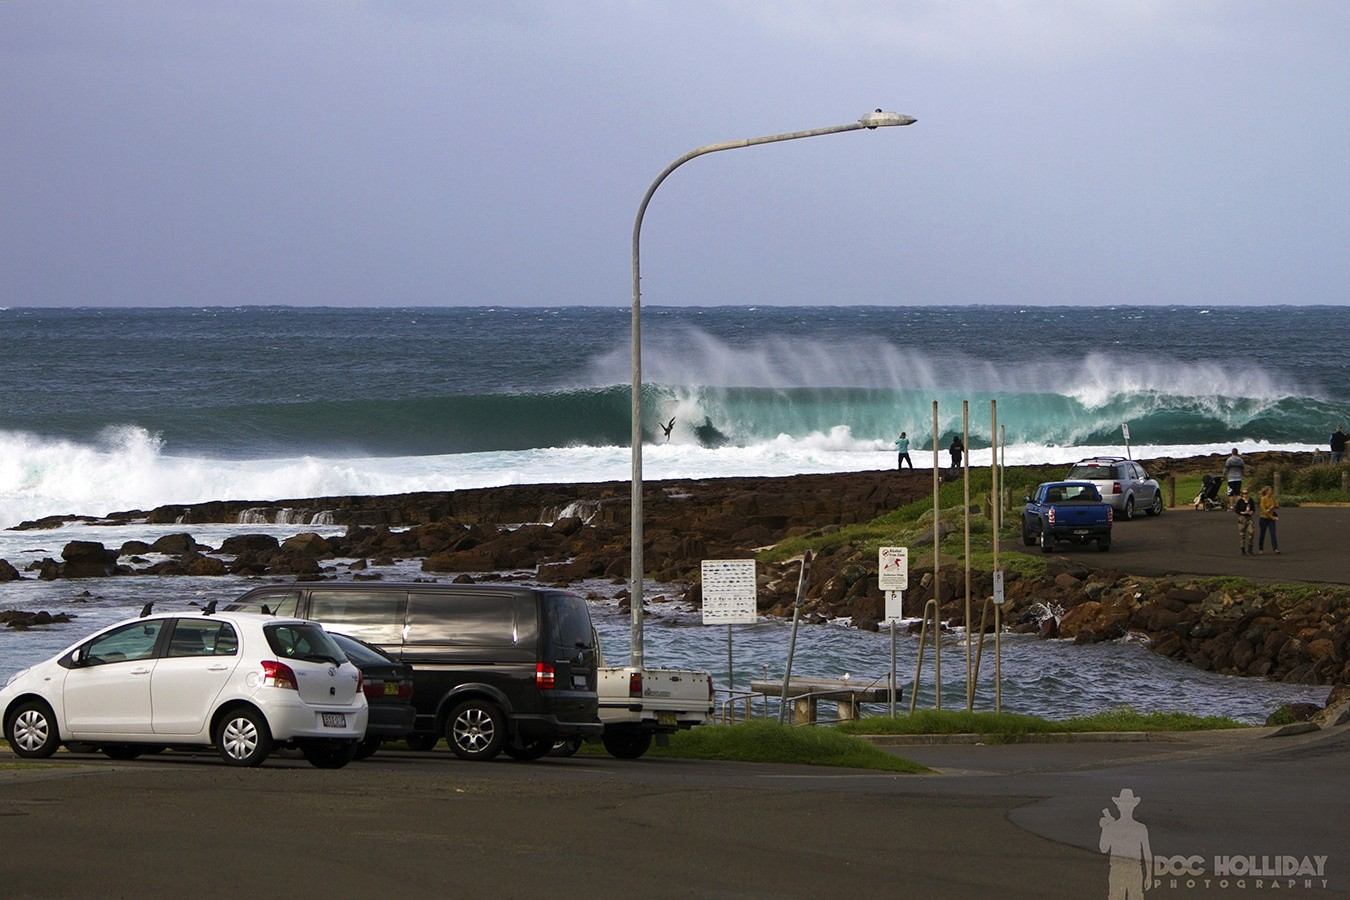 Gus Holliday's photo of Wollongong